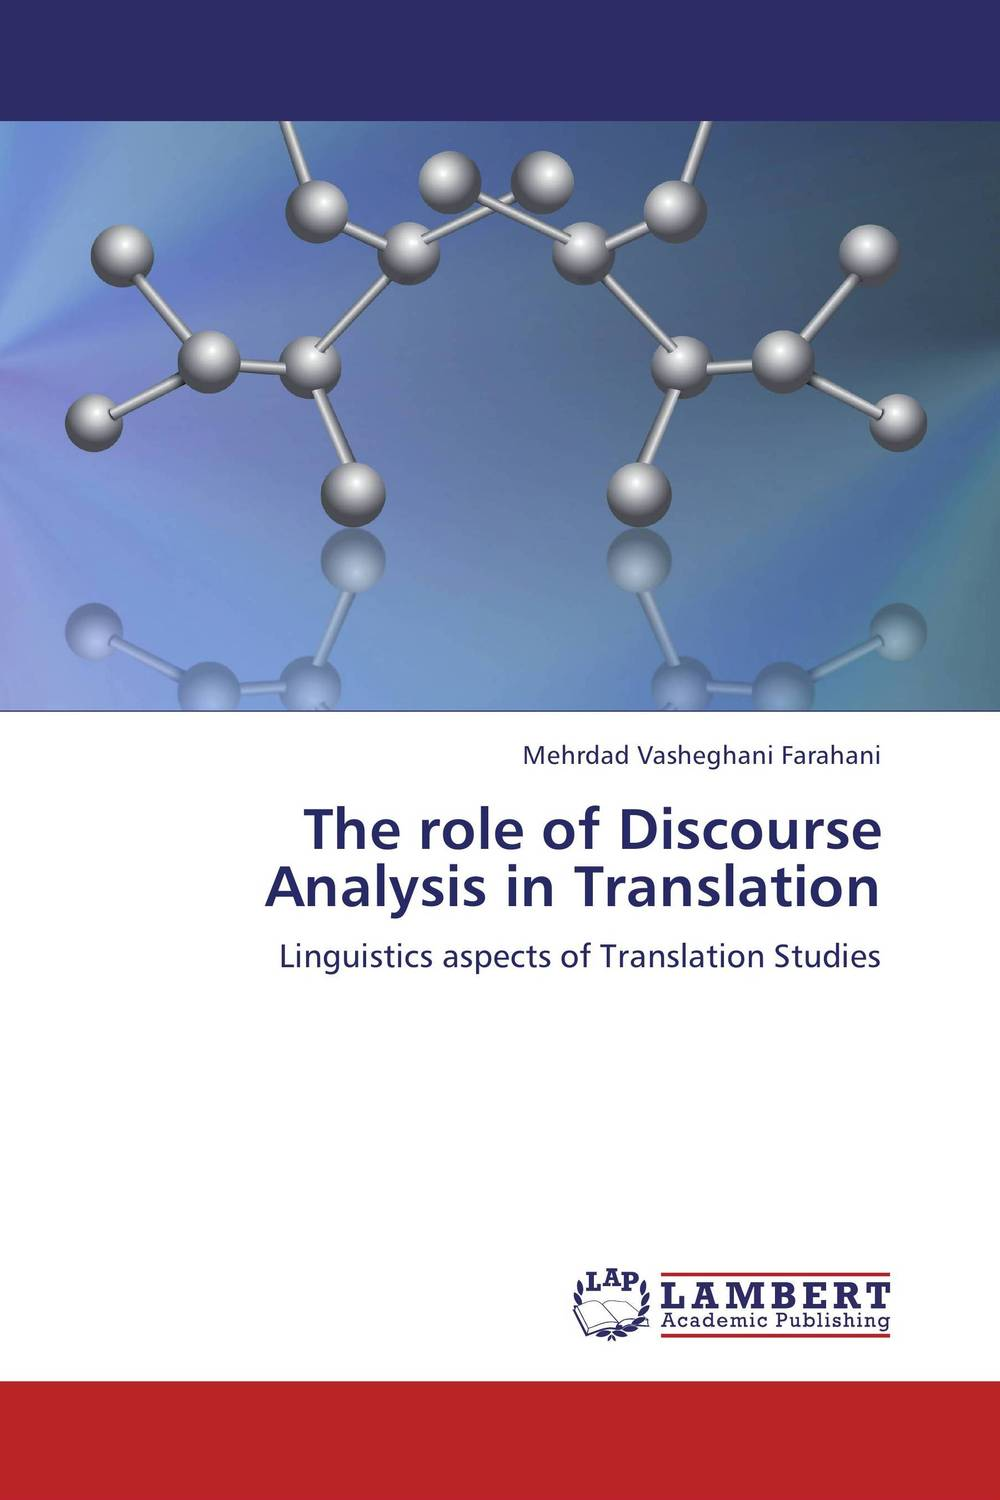 The role of Discourse Analysis in Translation shahrzad dehghan kourosh akef and sholeh kolahi the role of brain dominance in translation quality